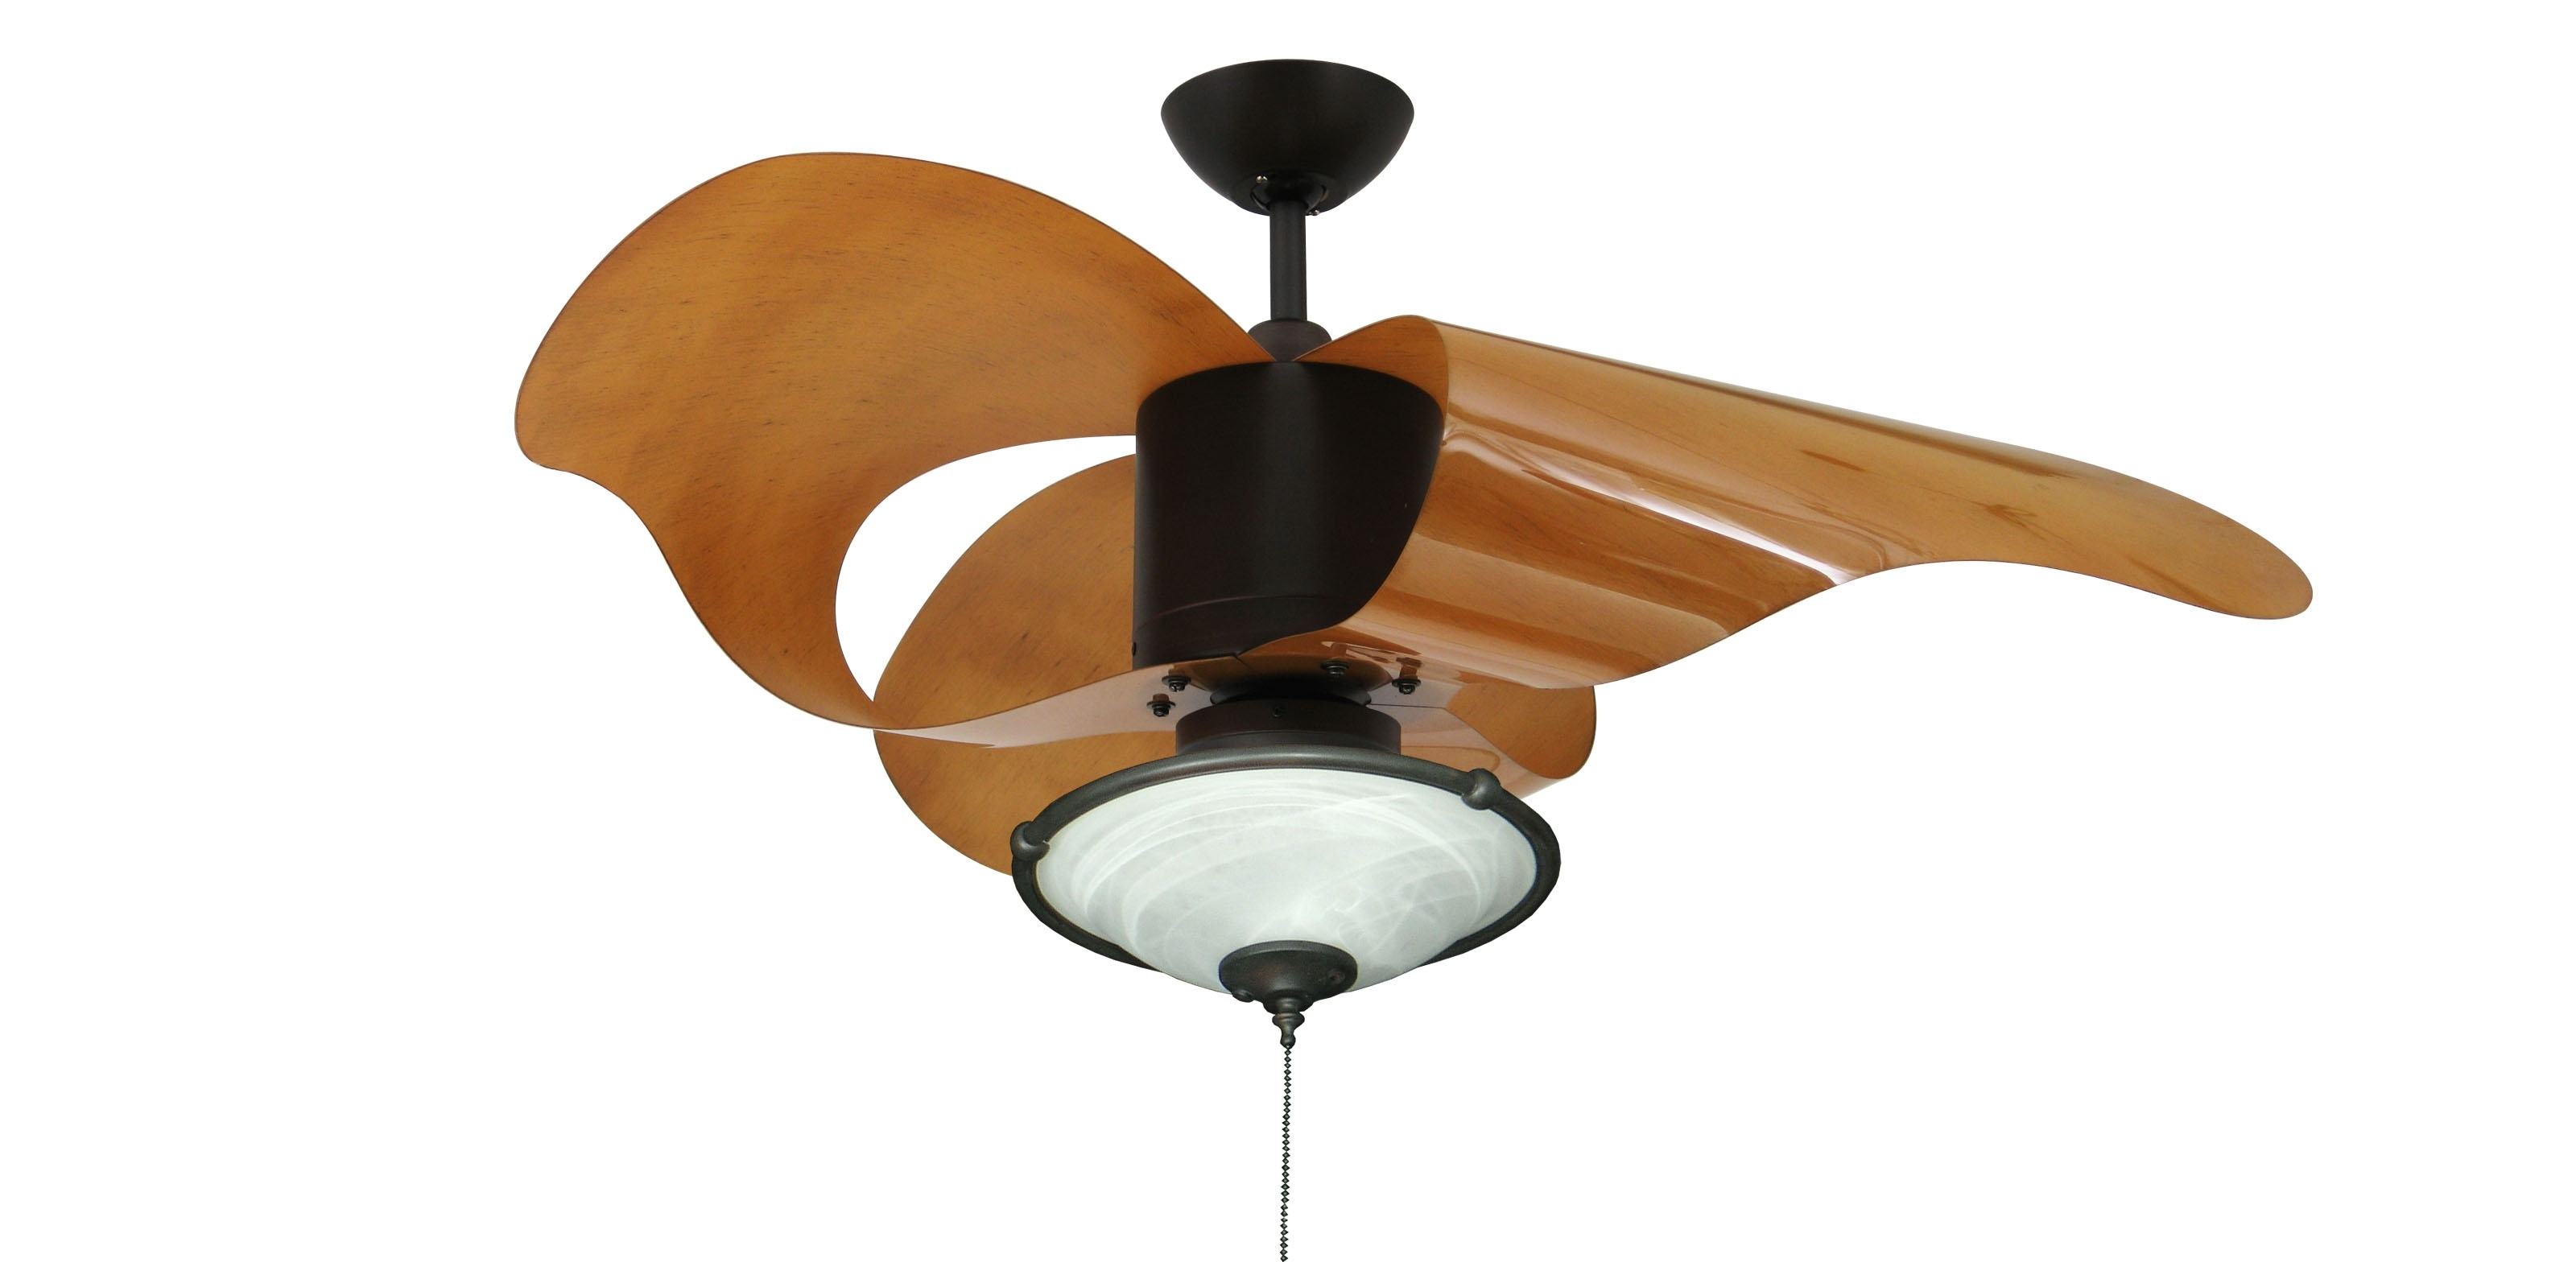 Latest Outdoor Ceiling Fan With Light And Remote – Tariqalhanaee Throughout Outdoor Ceiling Fans With Remote And Light (View 10 of 20)